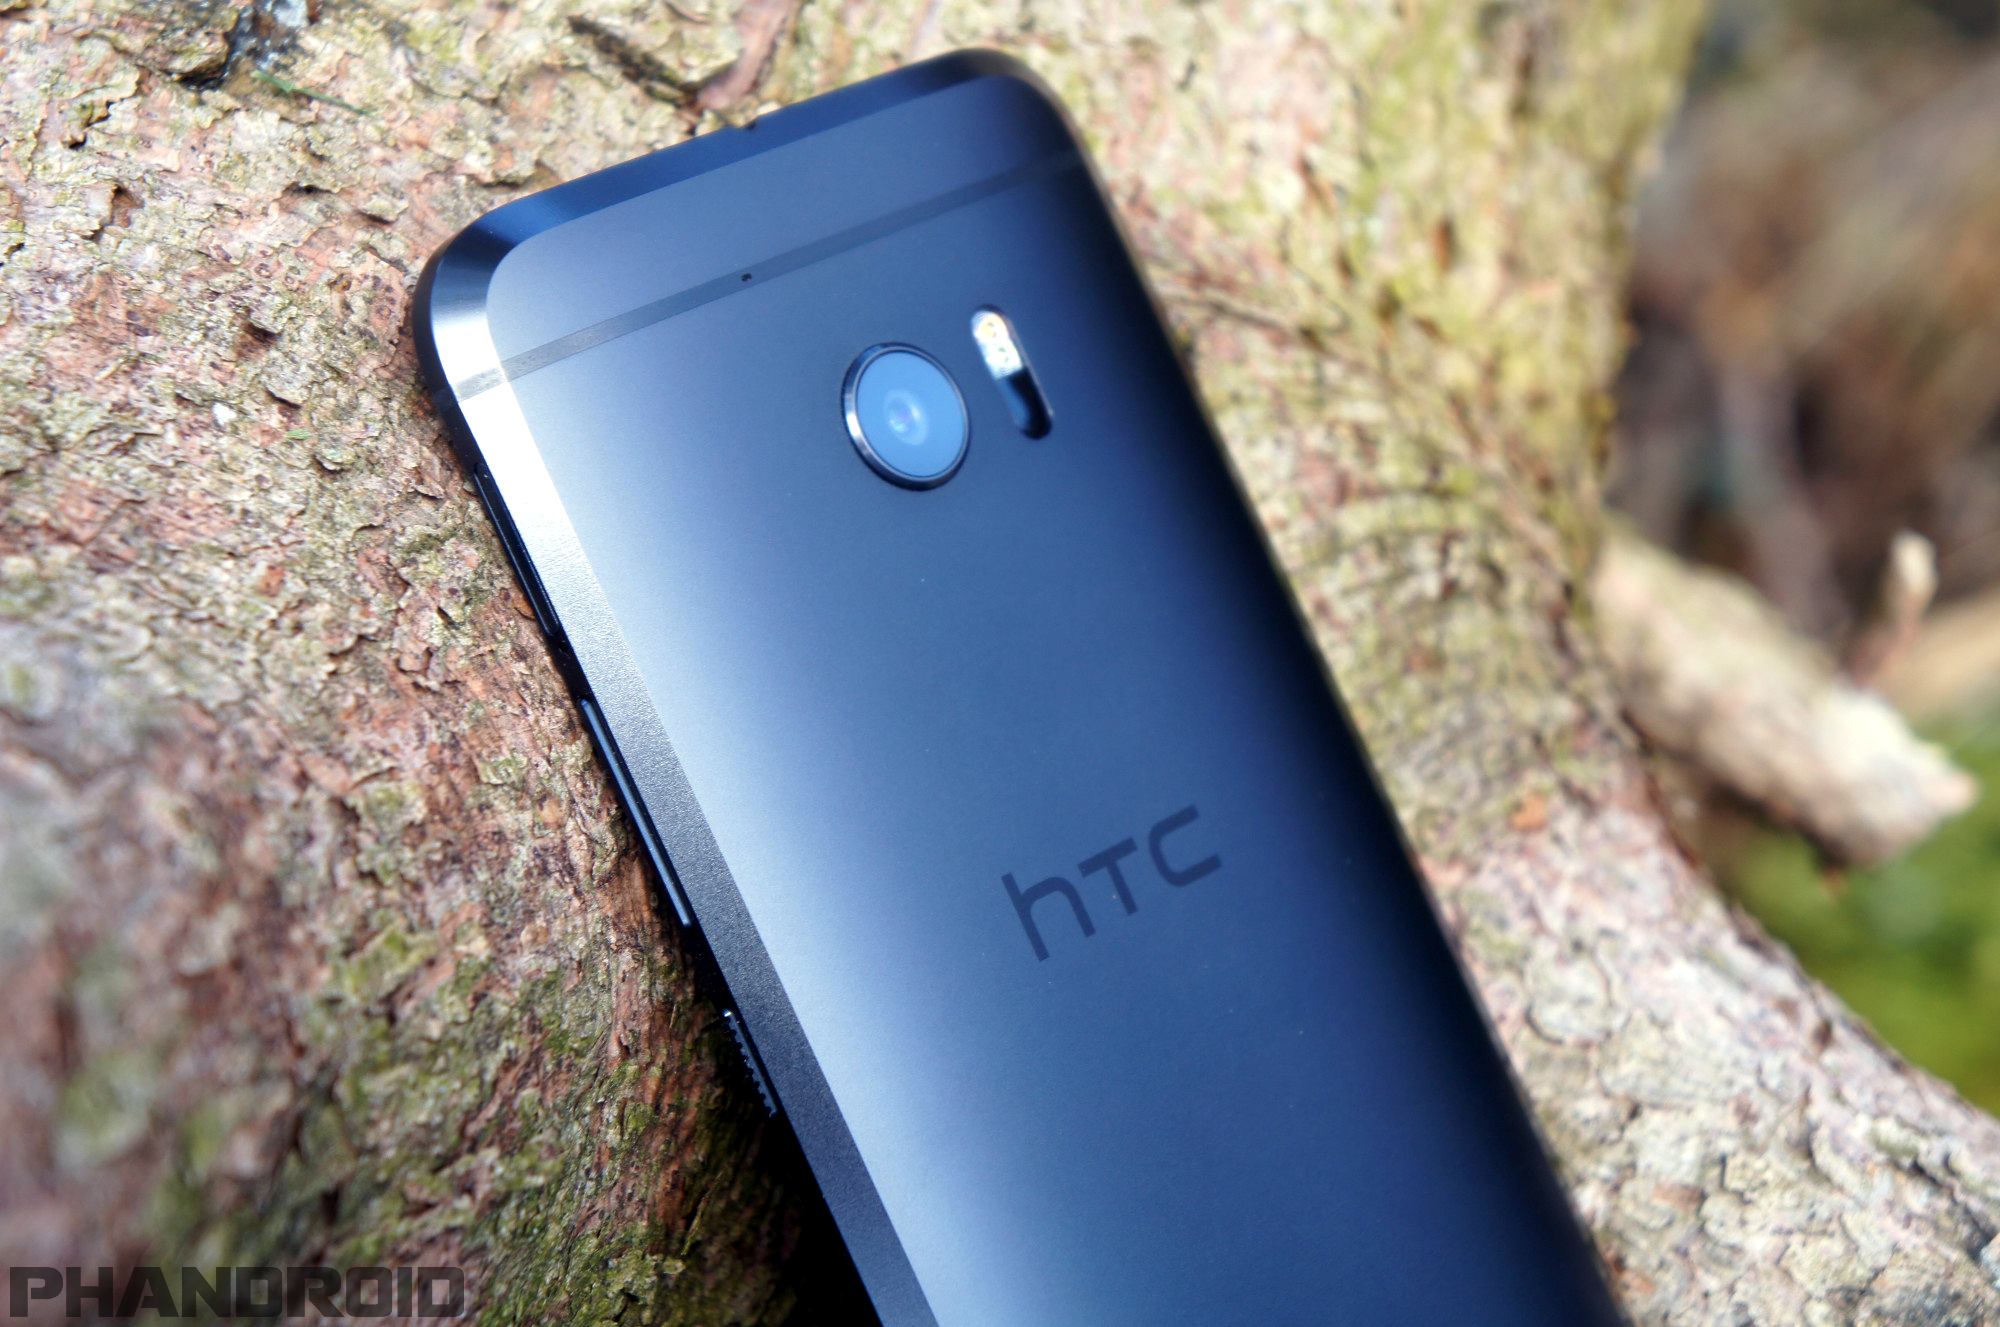 Phone Best Reviewed Android Phone how does the htc 10 stack up in best android phones rankings review 17 check out phones